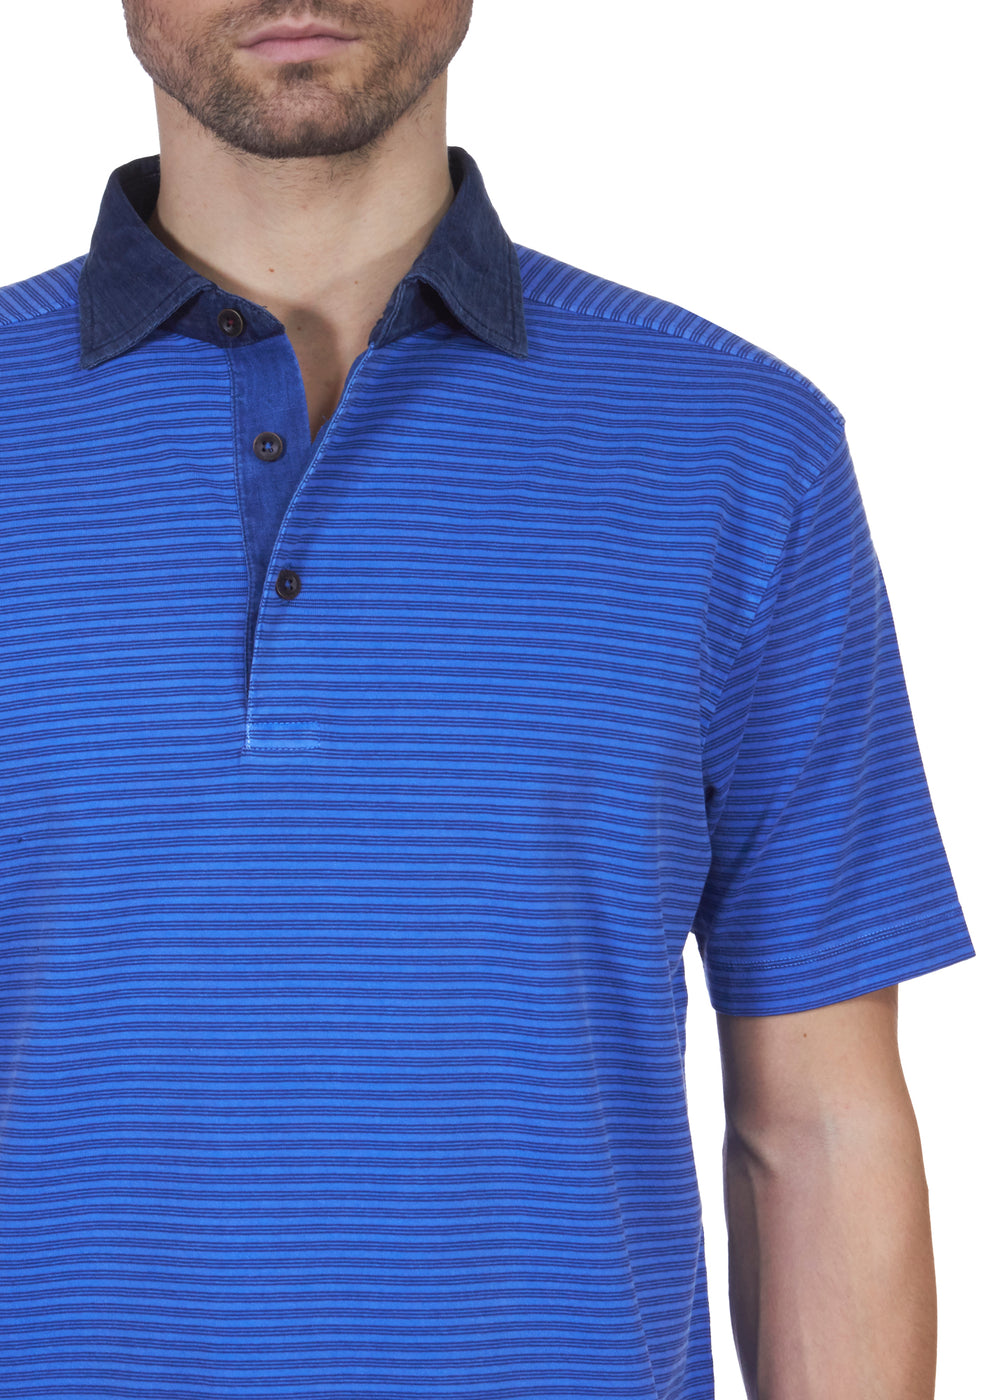 Thaddeus IVAN Striped Stretch Cotton Jersey Polo